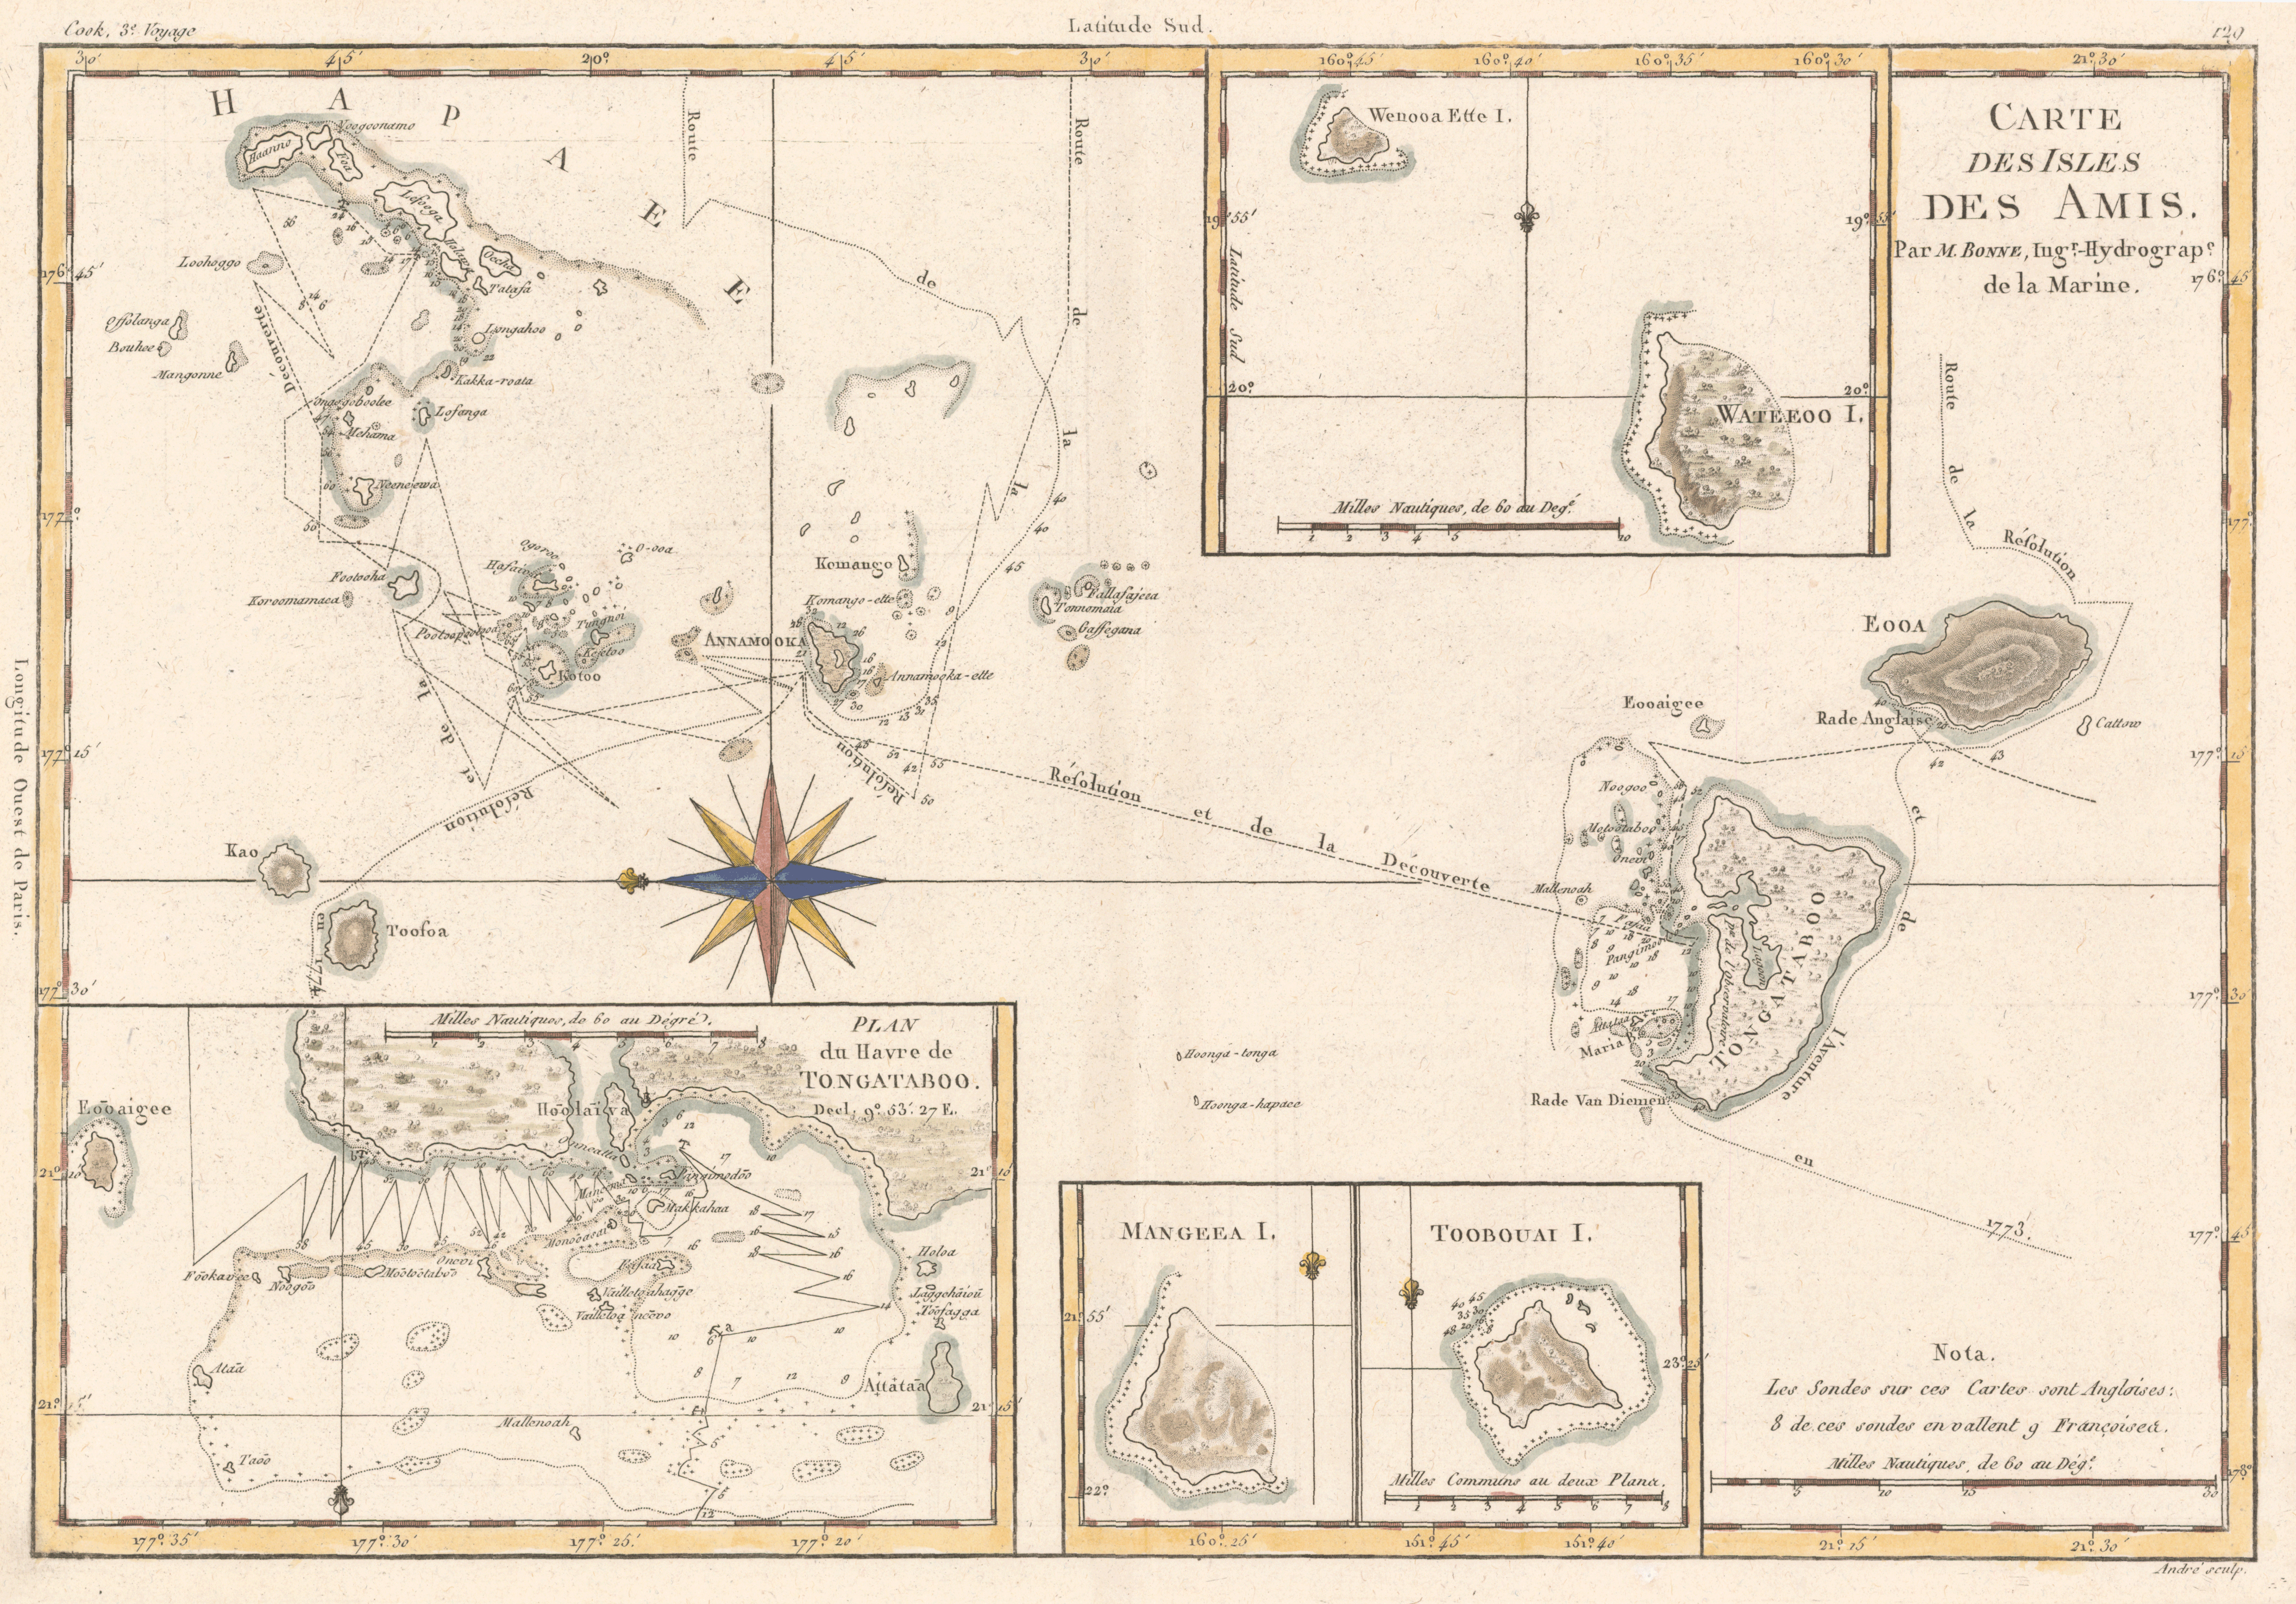 James Cook: Third Voyage on map of seychelles, map of bali, map of switzerland, map of fiji, map of moorea, map of brazil, map of thailand, map of costa rica, map of pacific ocean, map of bora bora, map of malaysia, map of south pacific, map of bahamas, map of carribean, map of spain, map of hawaii, map of kwajalein, map of new zealand, map of french polynesia, map of austrailia,